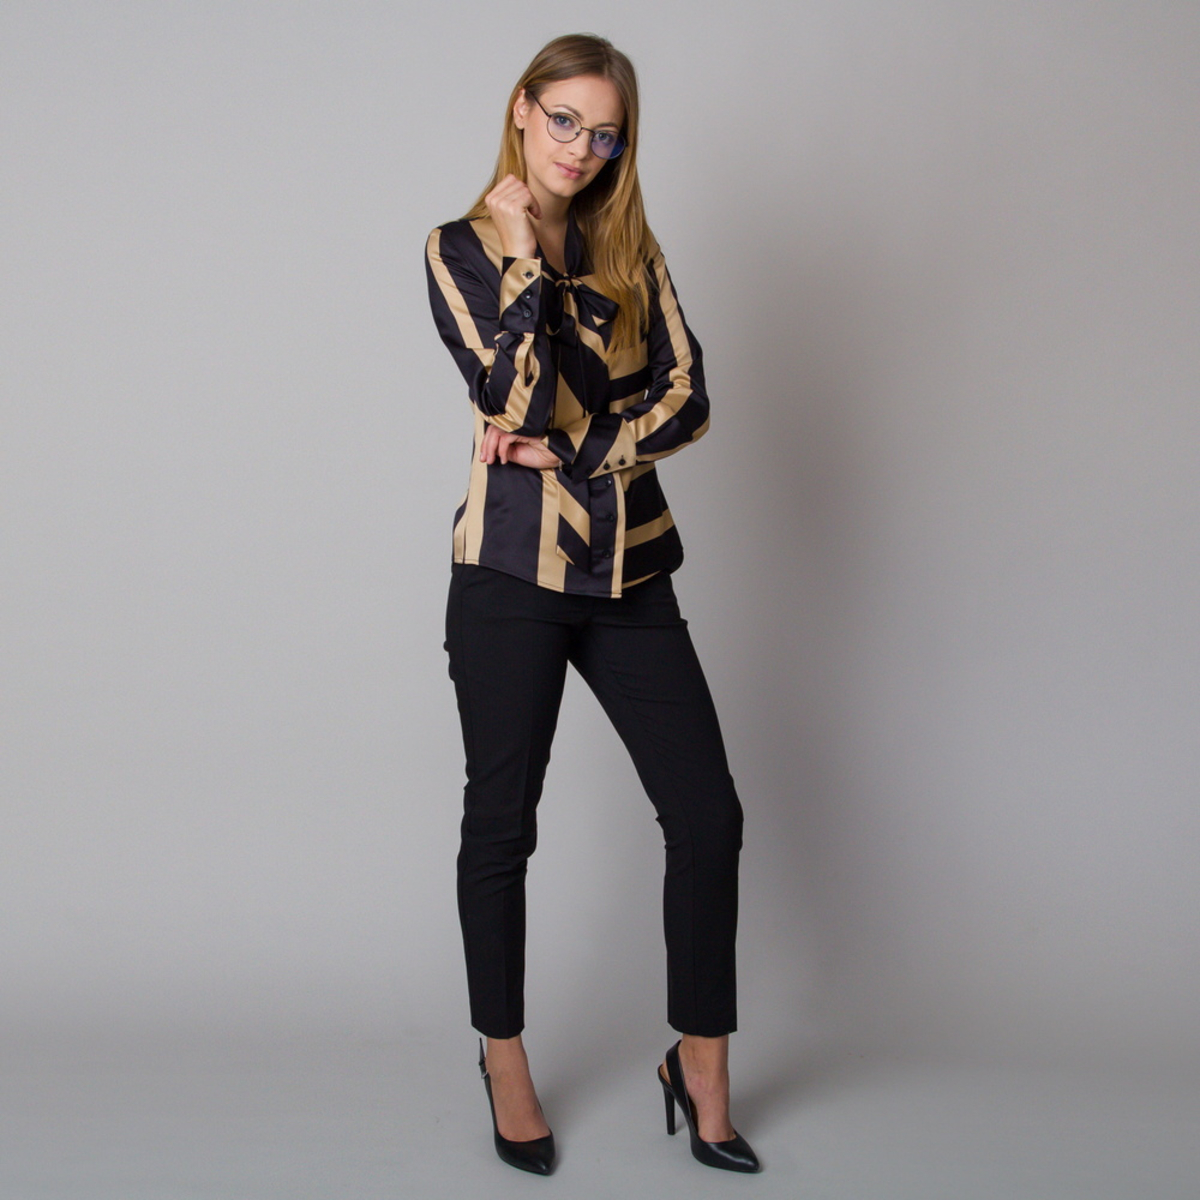 WOMEN'S SHIRT WITH A LONG RIBBON AND WITH BLACK AND GOLD STRIPES 12174